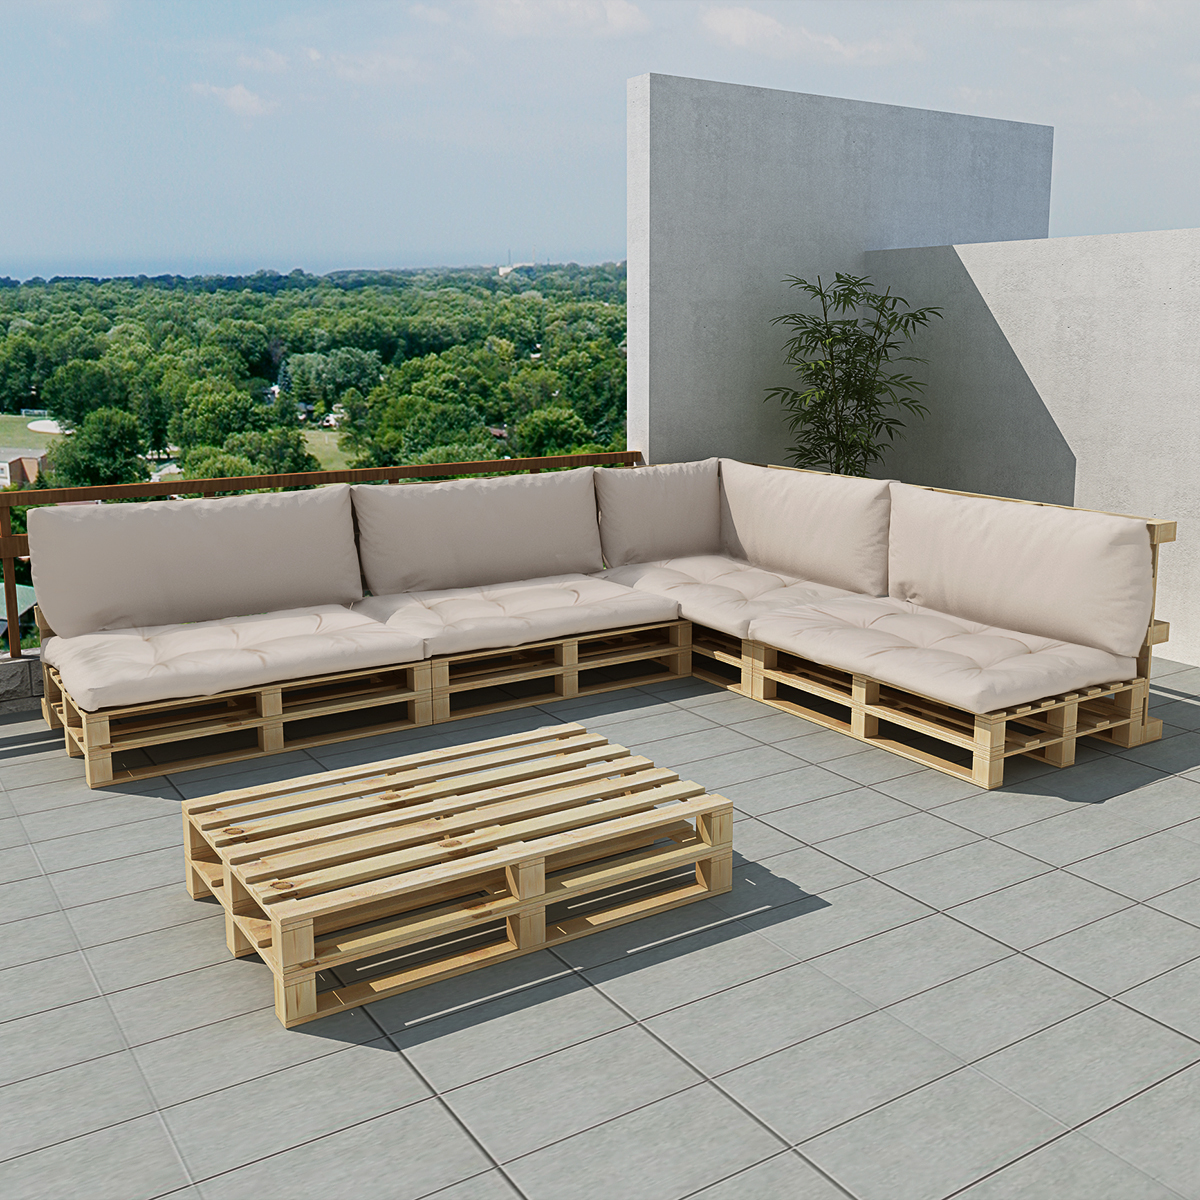 271776 Vidaxl 15 Pcs Wooden Outdoor Pallet Lounge Set With 9 Cushions Sand White 41515 9 X 41680 5 X 41681 41682 Outdoor Seating Vidaxl